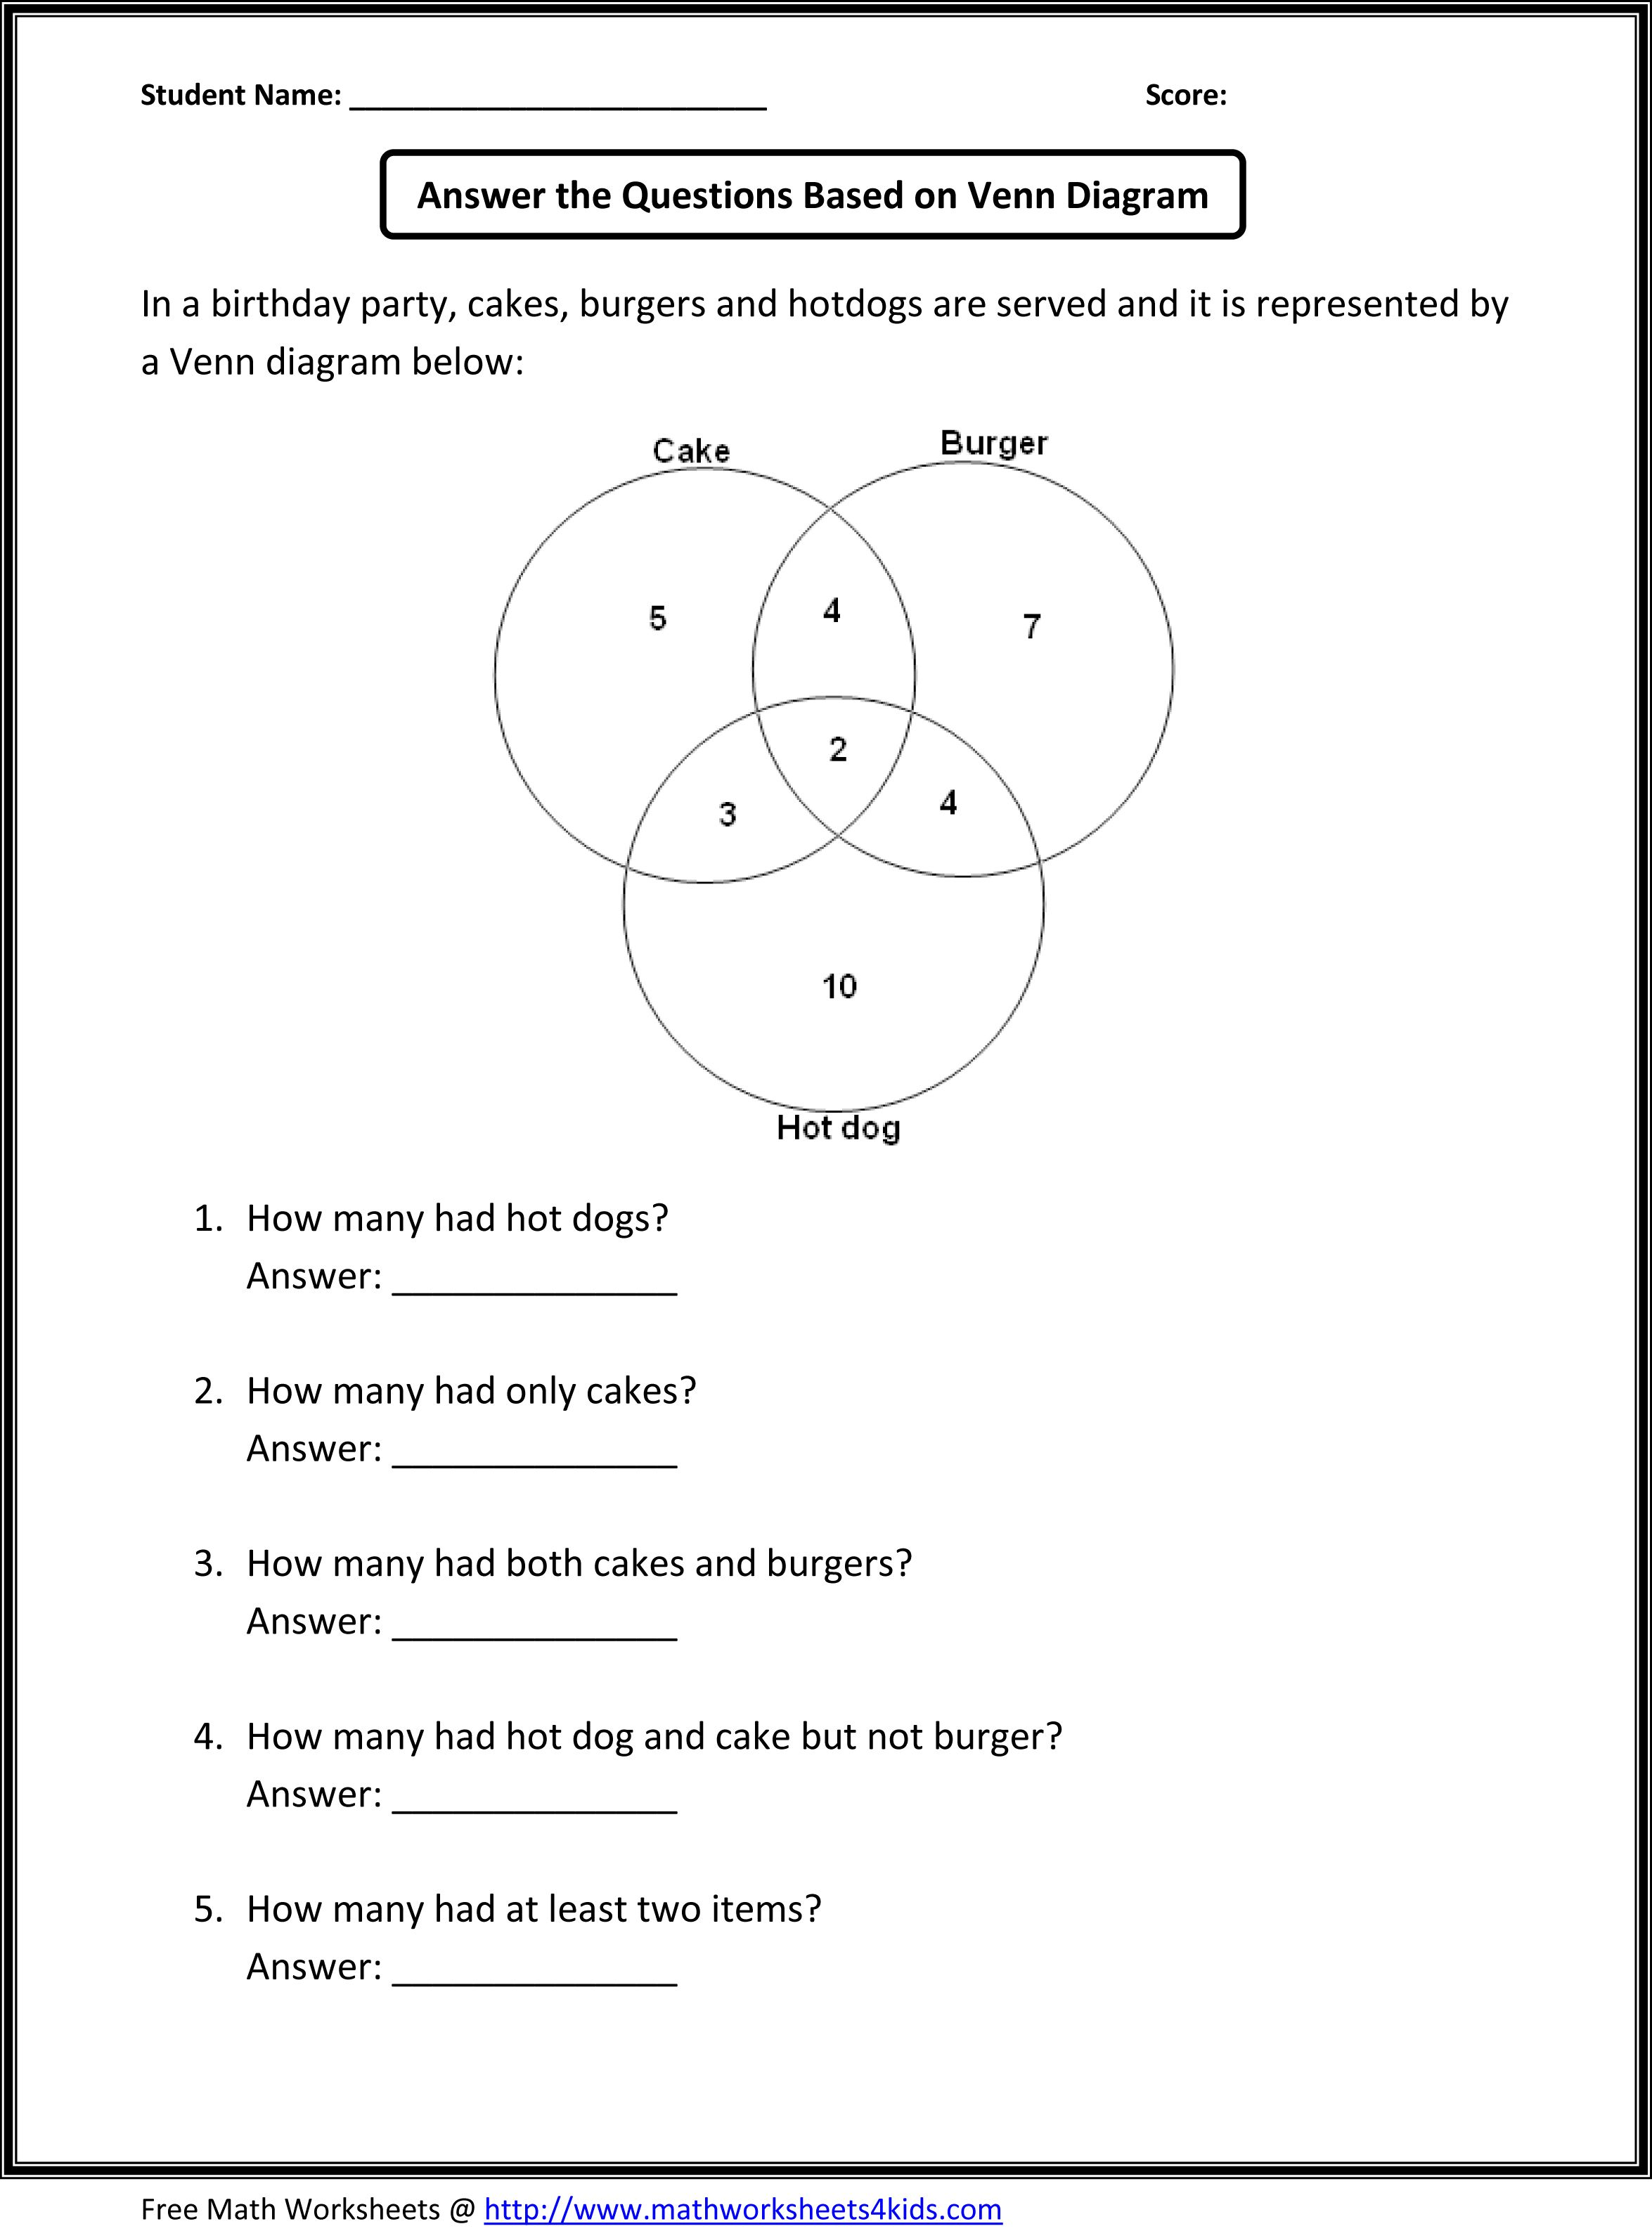 Venn diagram worksheets word problems using two sets projects to venn diagram worksheets word problems using two sets projects to try pinterest venn diagram worksheet venn diagrams and word problems ccuart Choice Image